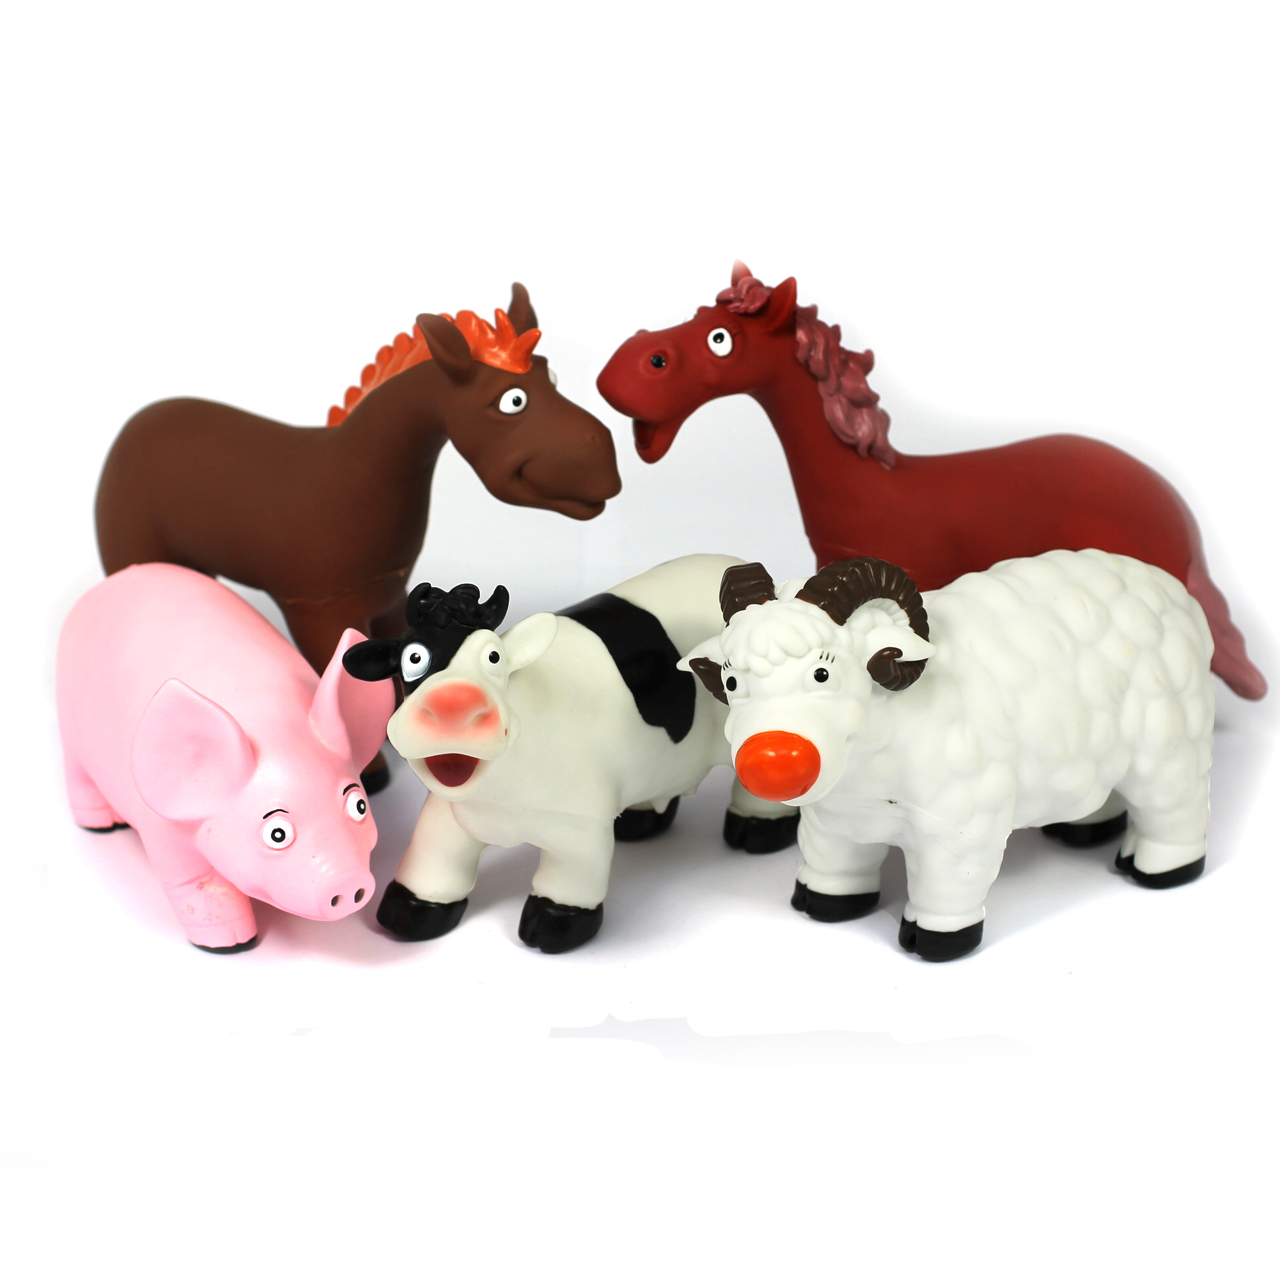 Soft Feel Cartoon Style Farm Animal Bundle Of 5